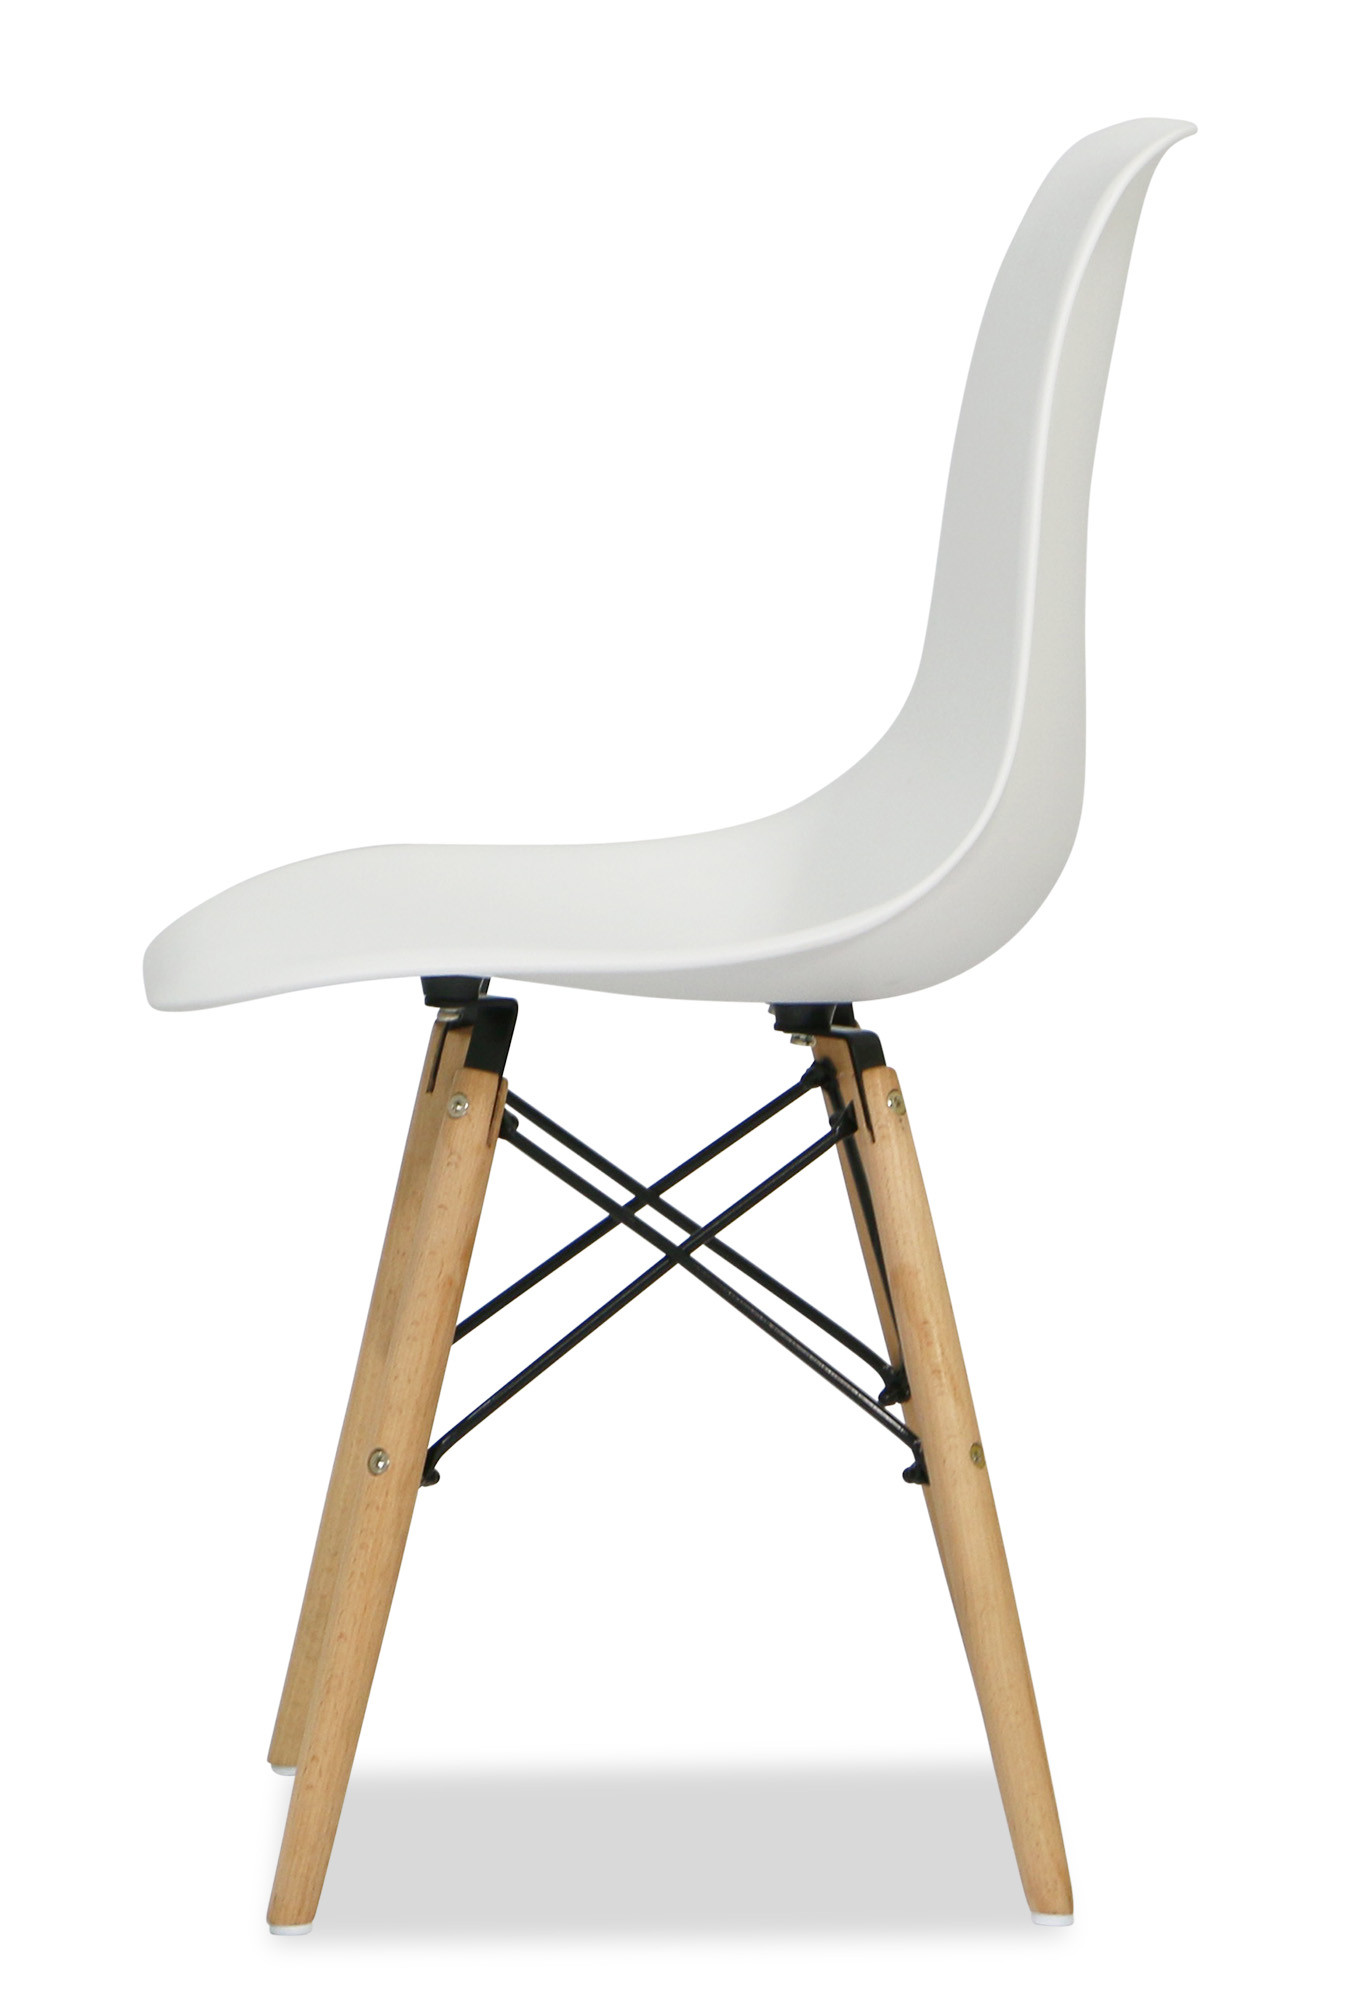 Designer stools singapore danish design co designer for Designer furniture replica melbourne